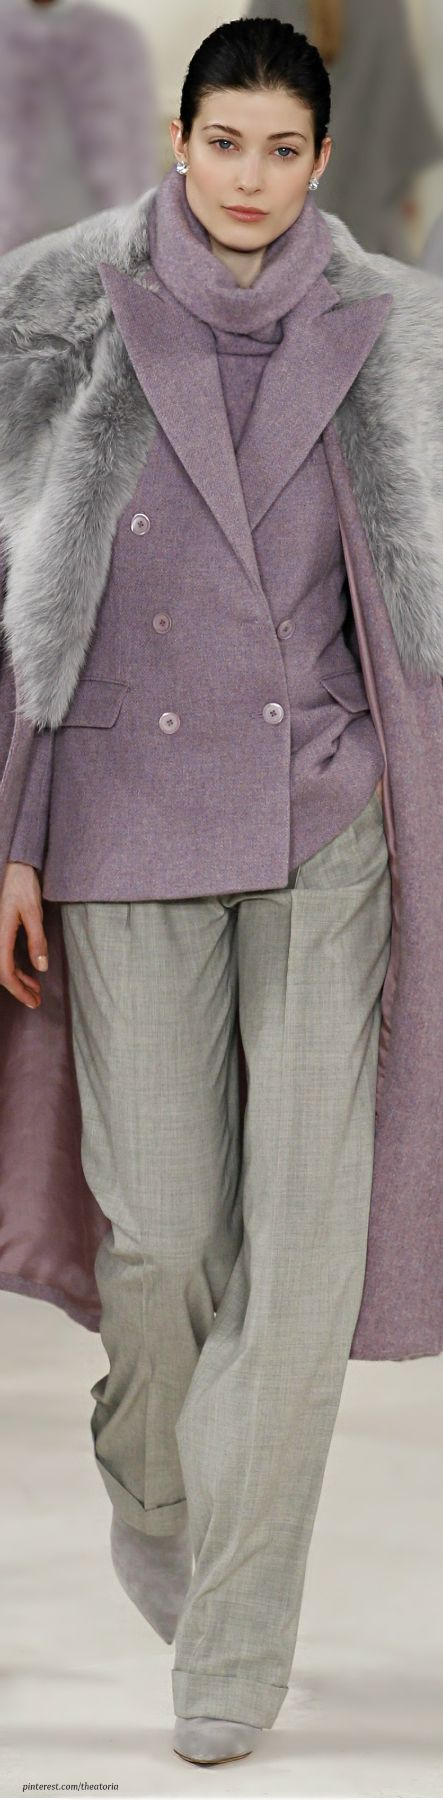 Ralph Lauren ● Fall 2014 if I had to choose one piece....the coat! definitely the coat!